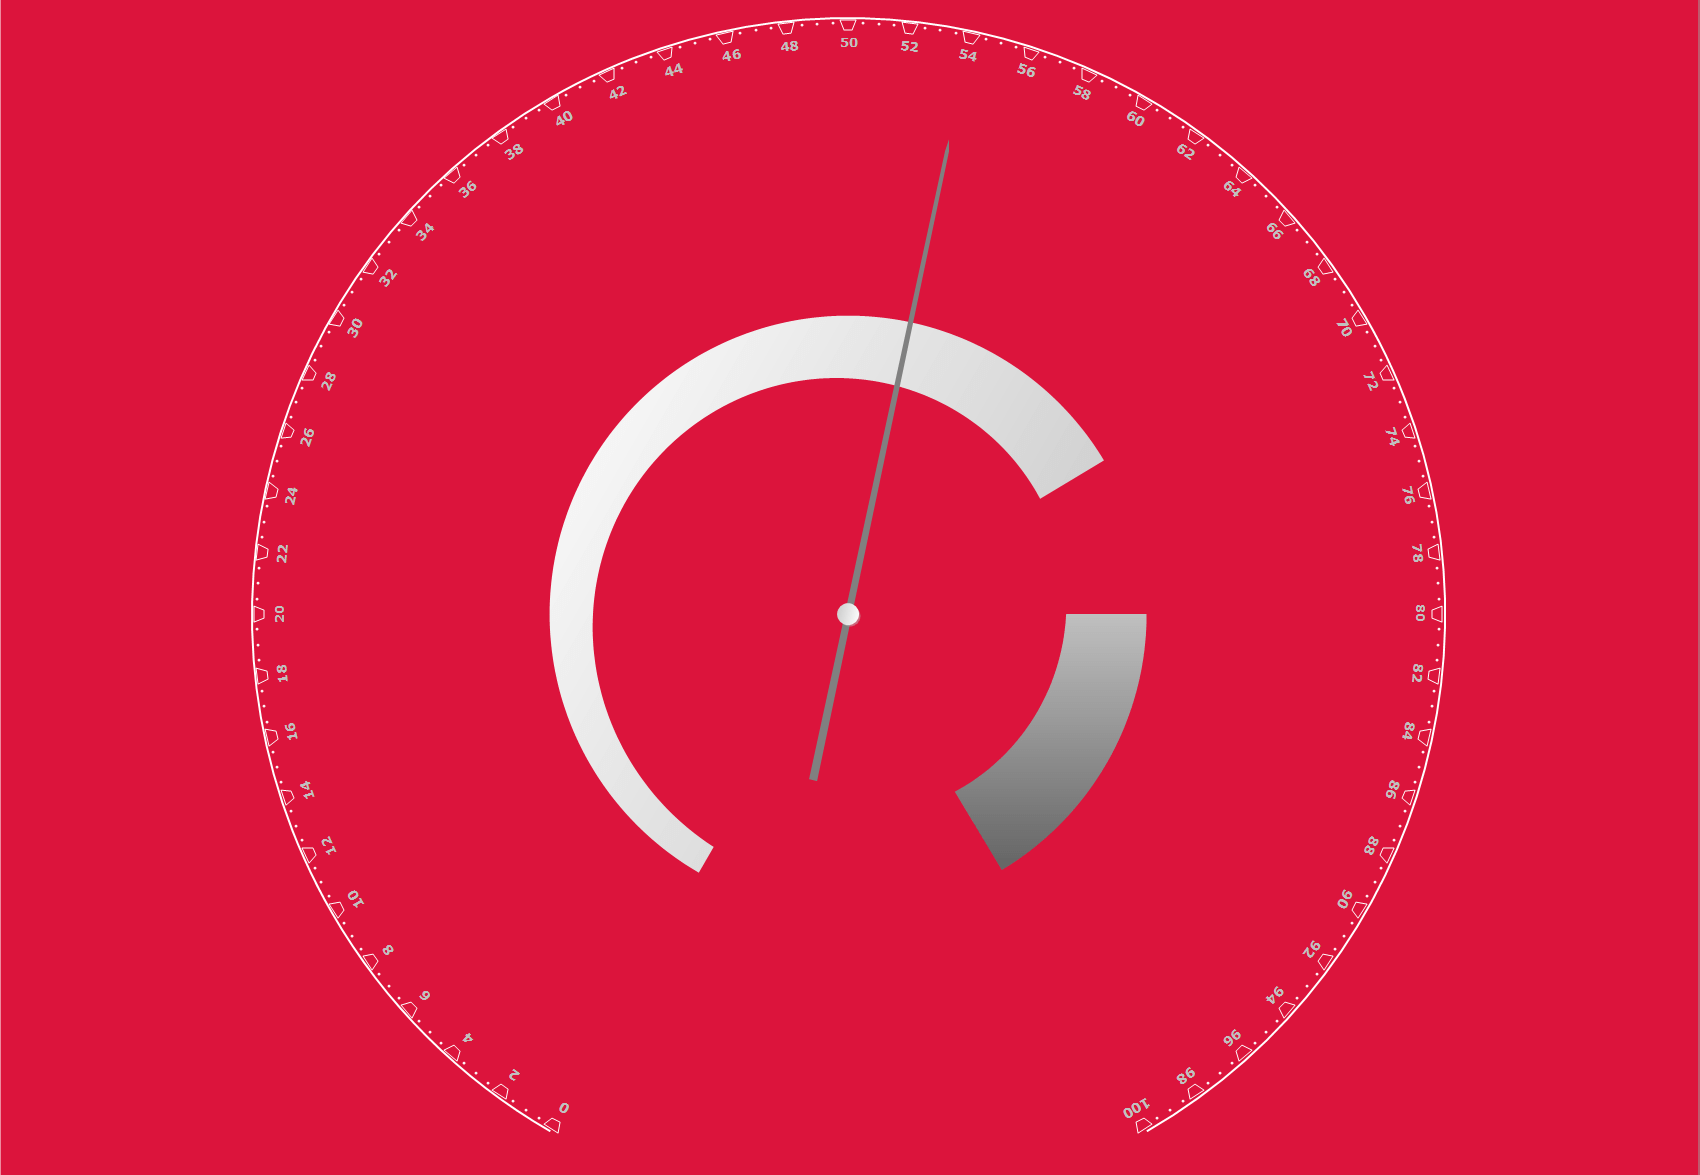 Circular Gauge provides a fully configurable and quick drawing circular gauge style